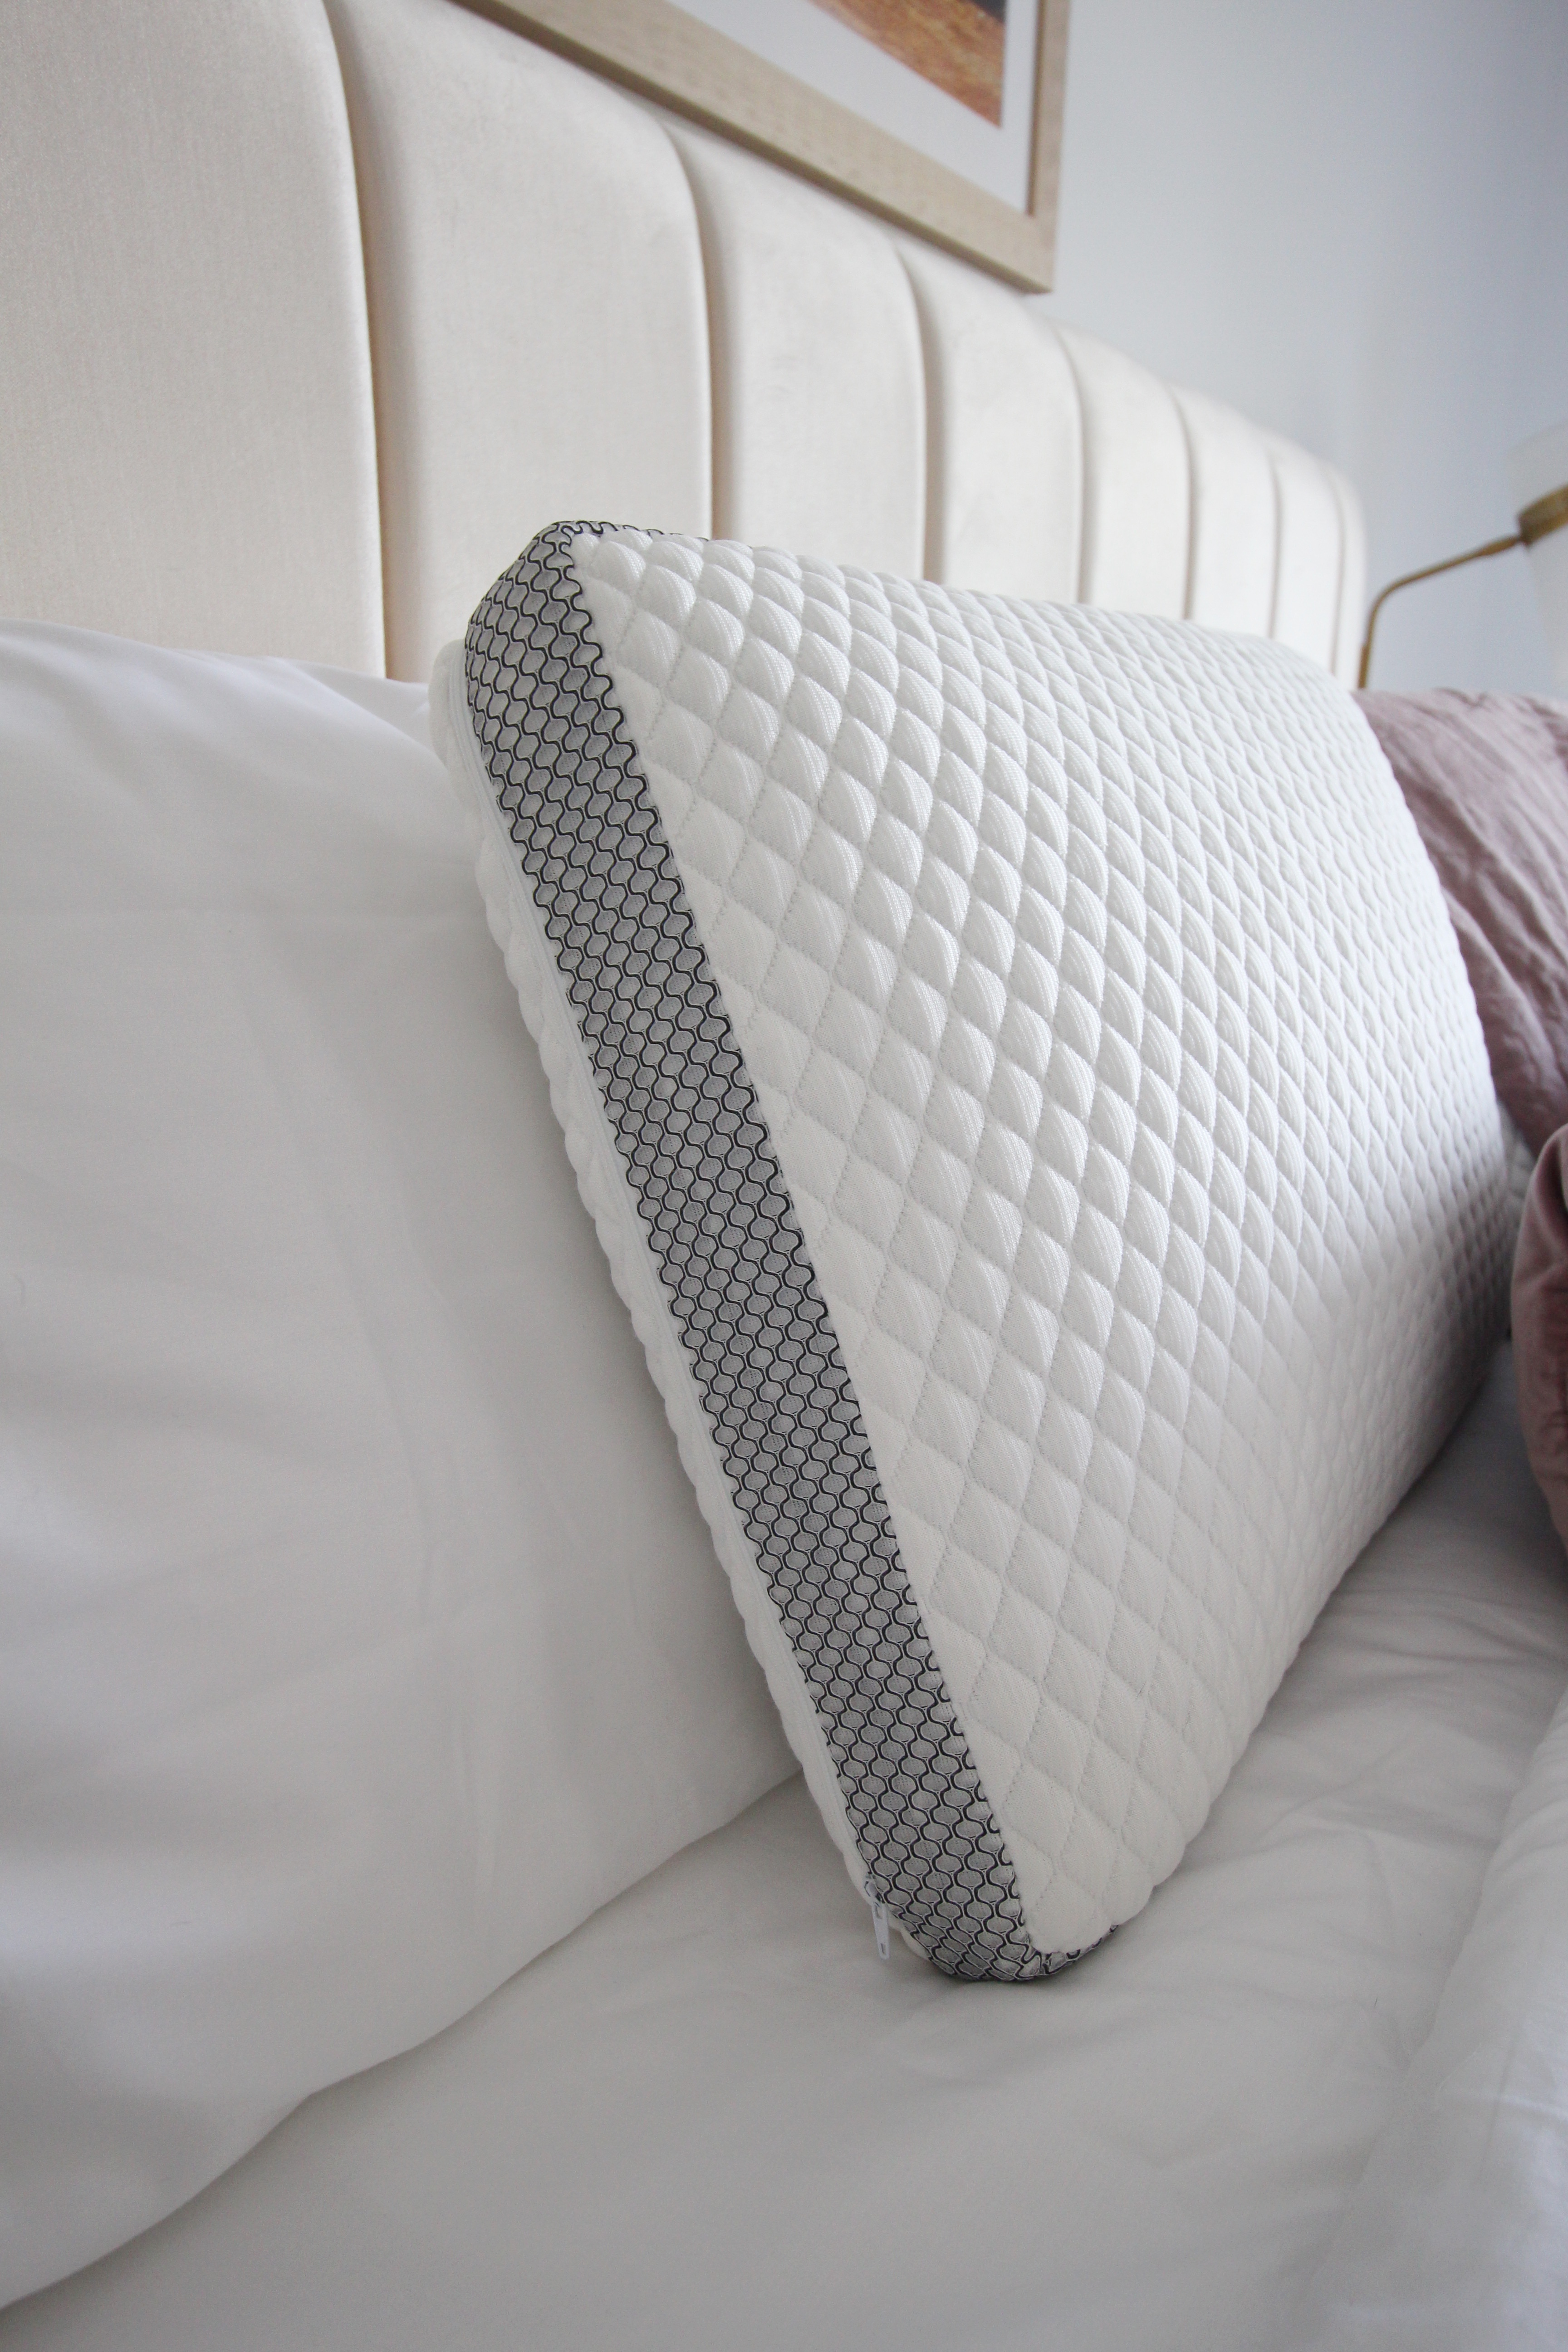 therapedic trucool pillows